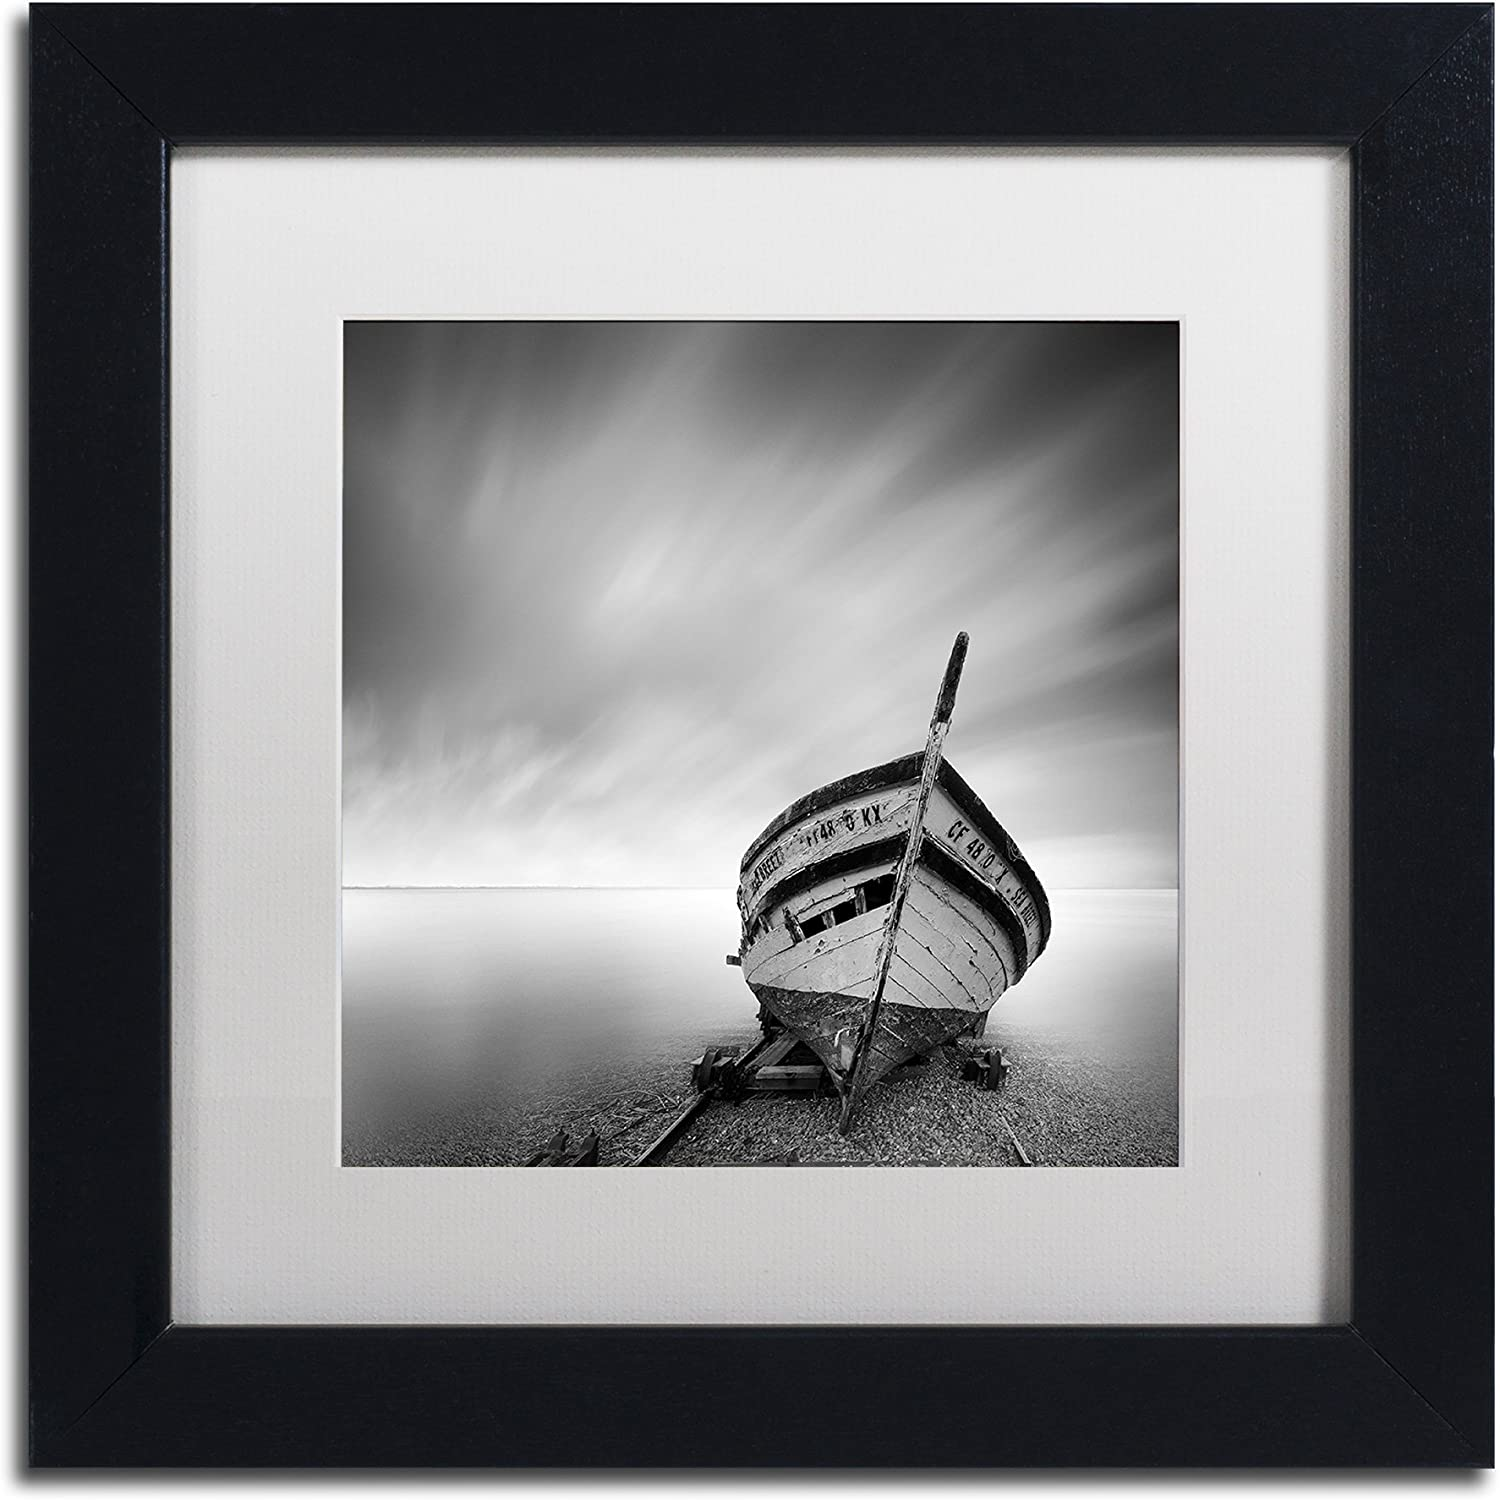 Trademark Fine Art Boat I by Moises Levy in White Matte and Black Framed Artwork, 11 by 11Inch